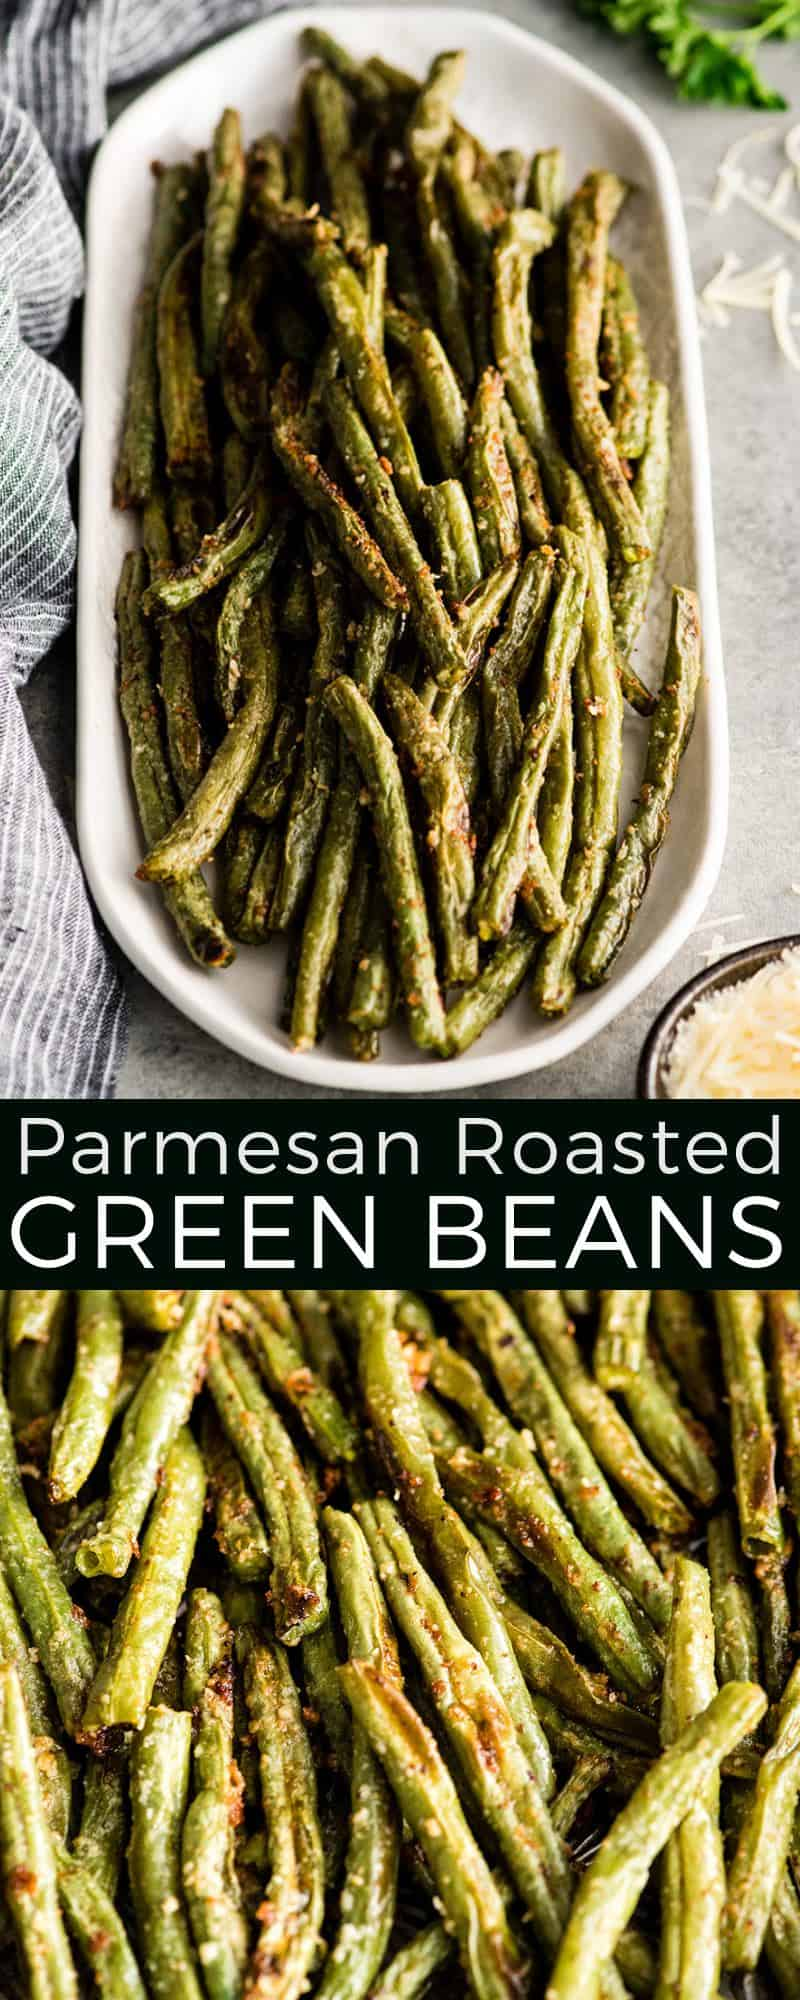 This Roasted Parmesan Green Beans recipe is a healthy & flavorful side dish! Made with only six ingredients in 30 minutes, these baked green beans are so easy and a great way to prepare frozen or fresh green beans!#greenbeans #roastedgreenbeans #parmesangreenbeans #sidedish #thanksgiving #christmas #healthyrecipe